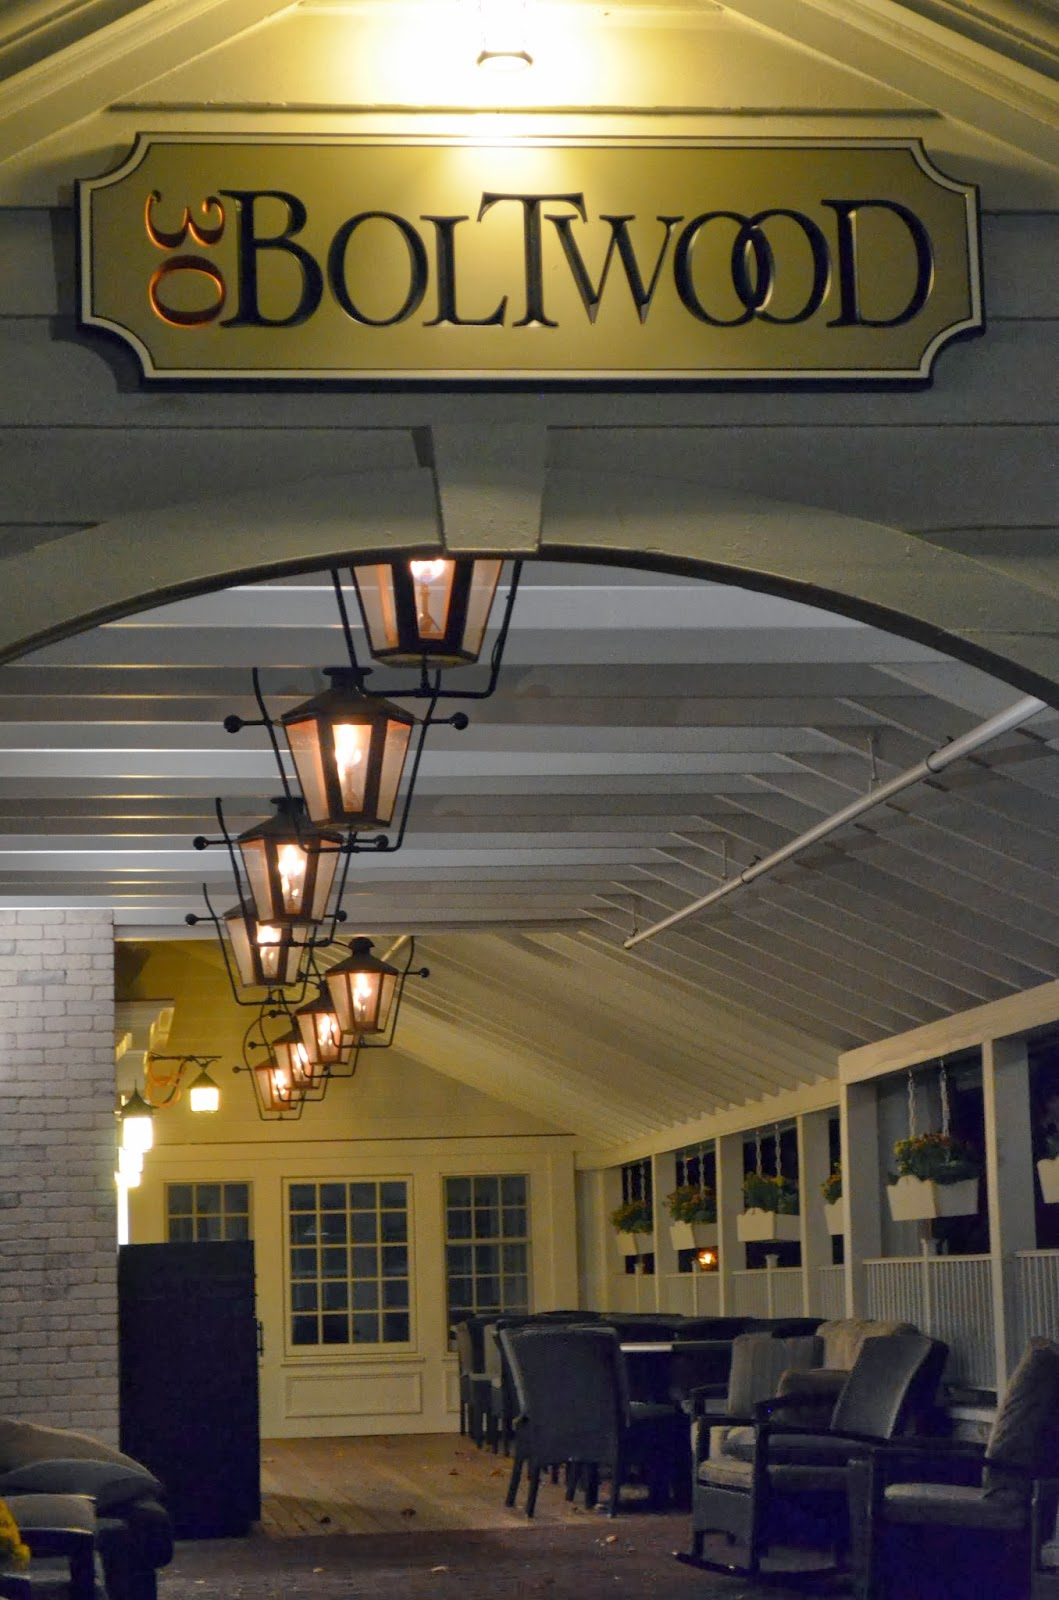 30Boltwood at the Lord Jeffrey Inn, Amherst, MA – Foodette Reviews